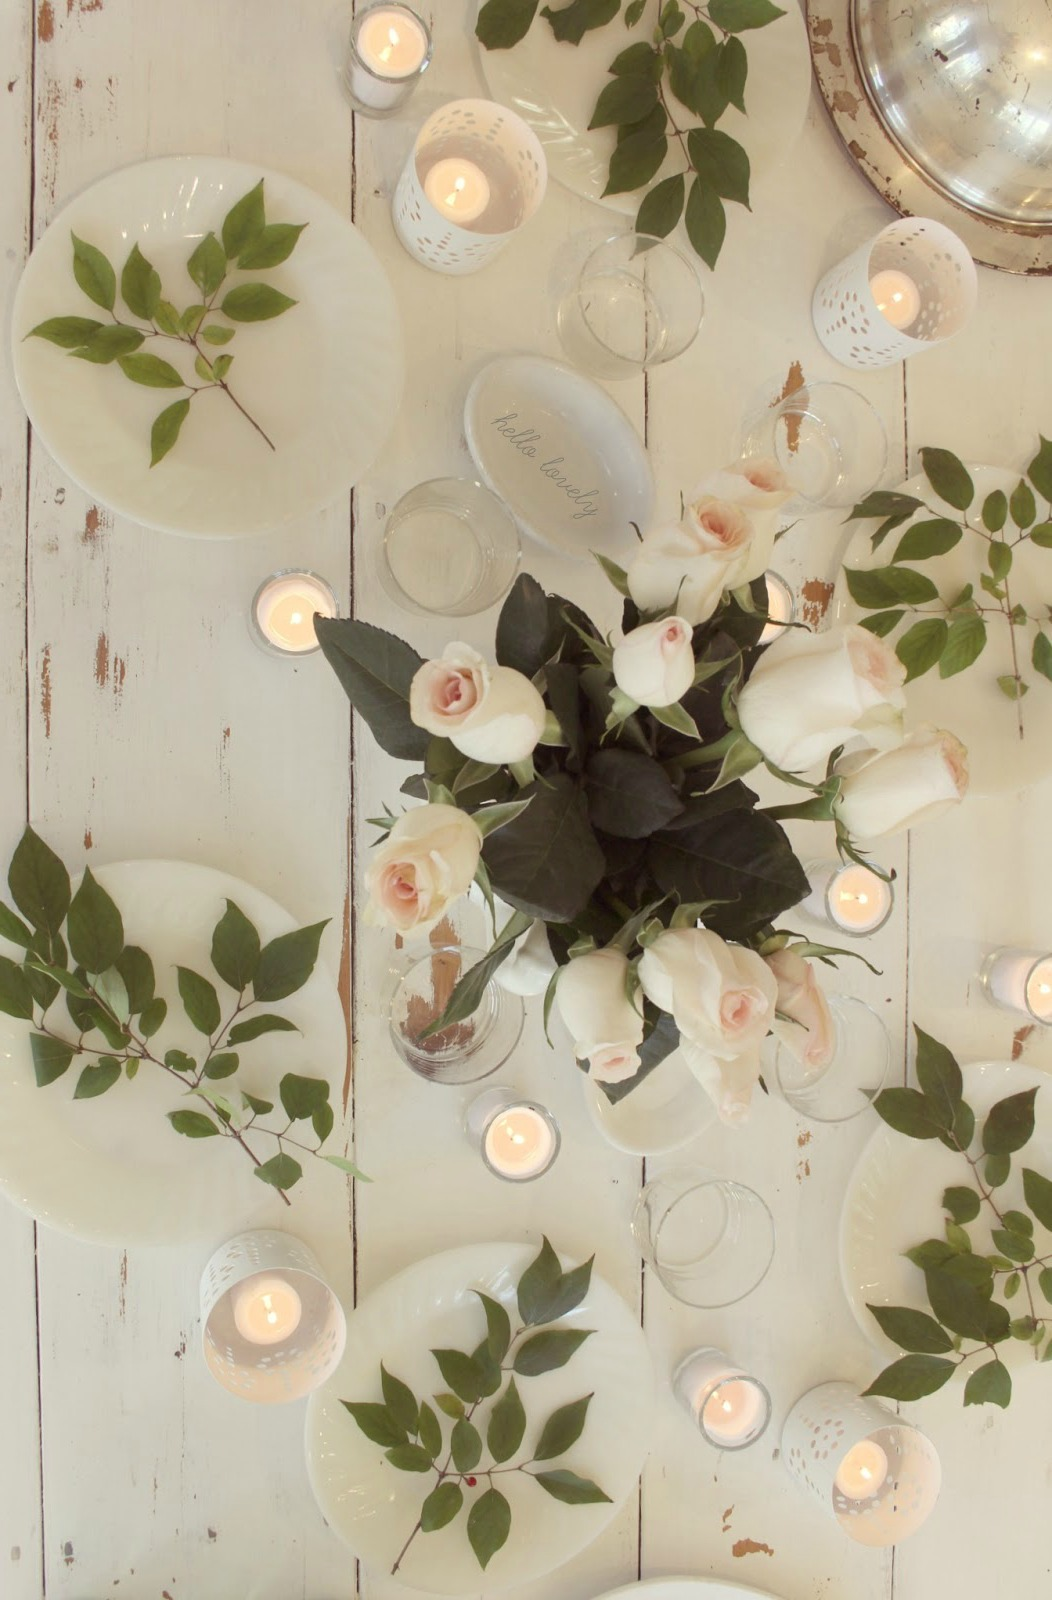 Pale pink roses upon a white farm table with serene, romantic tablescape - Hello Lovely Studio.